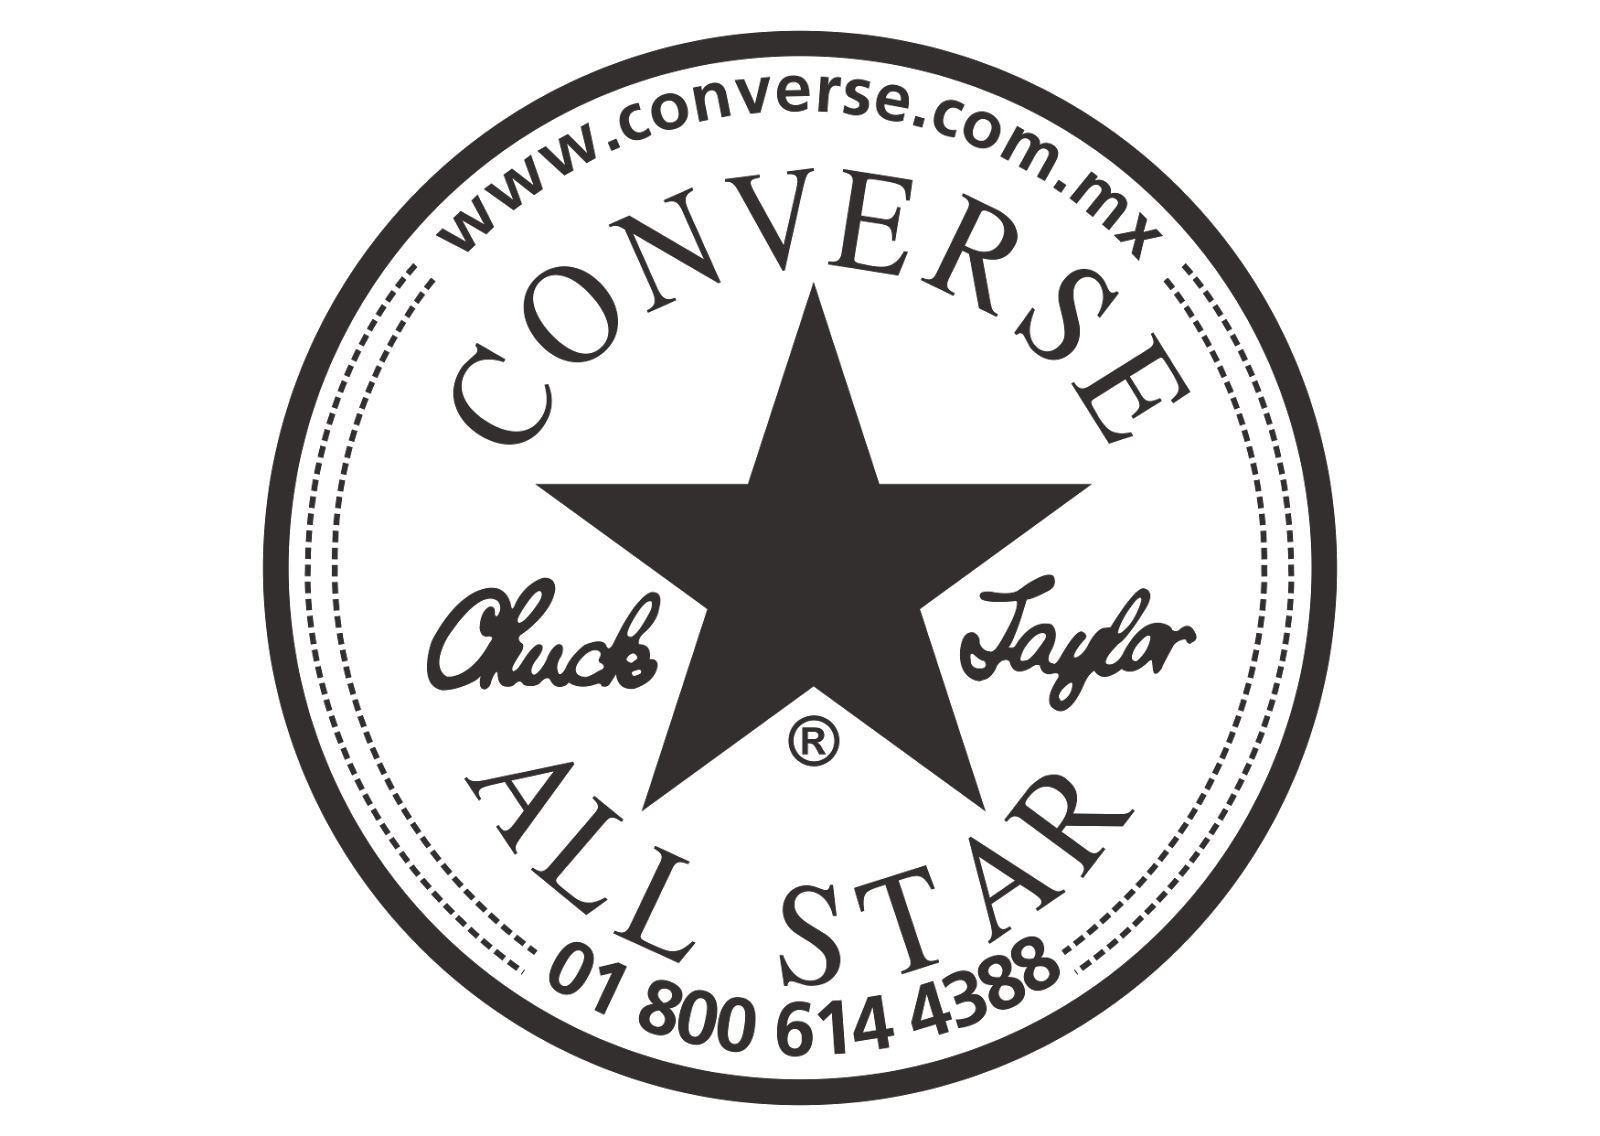 Yeezy logo png vector. Coverse all star black